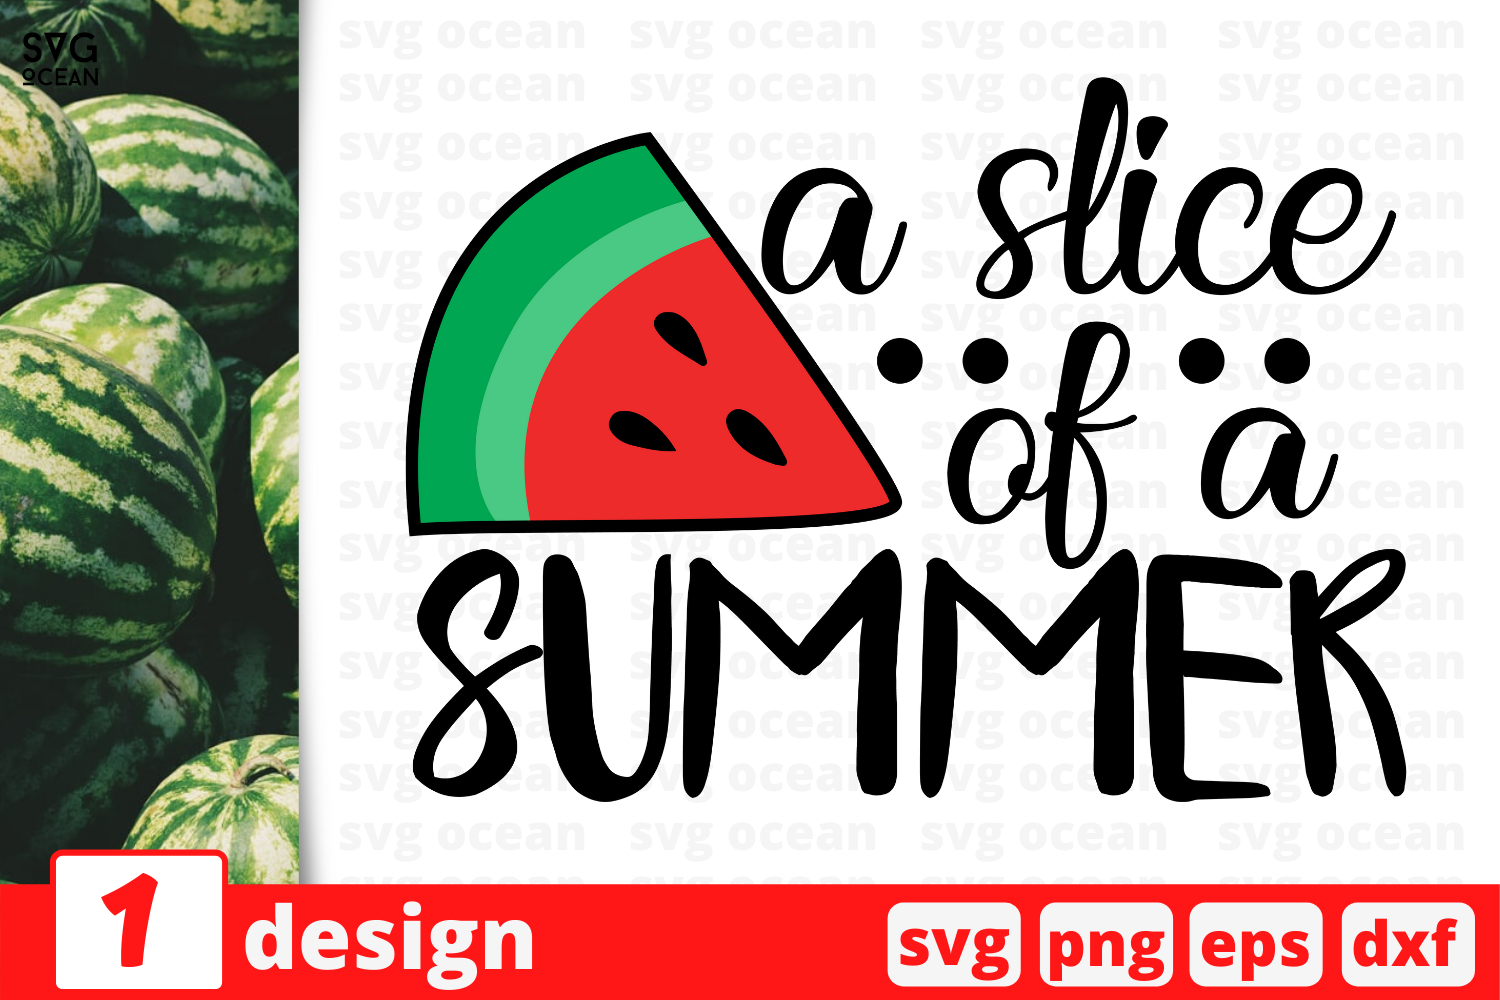 Download Free 1 A Slice Of A Summer Svg For Cricut Graphic By Svgocean for Cricut Explore, Silhouette and other cutting machines.